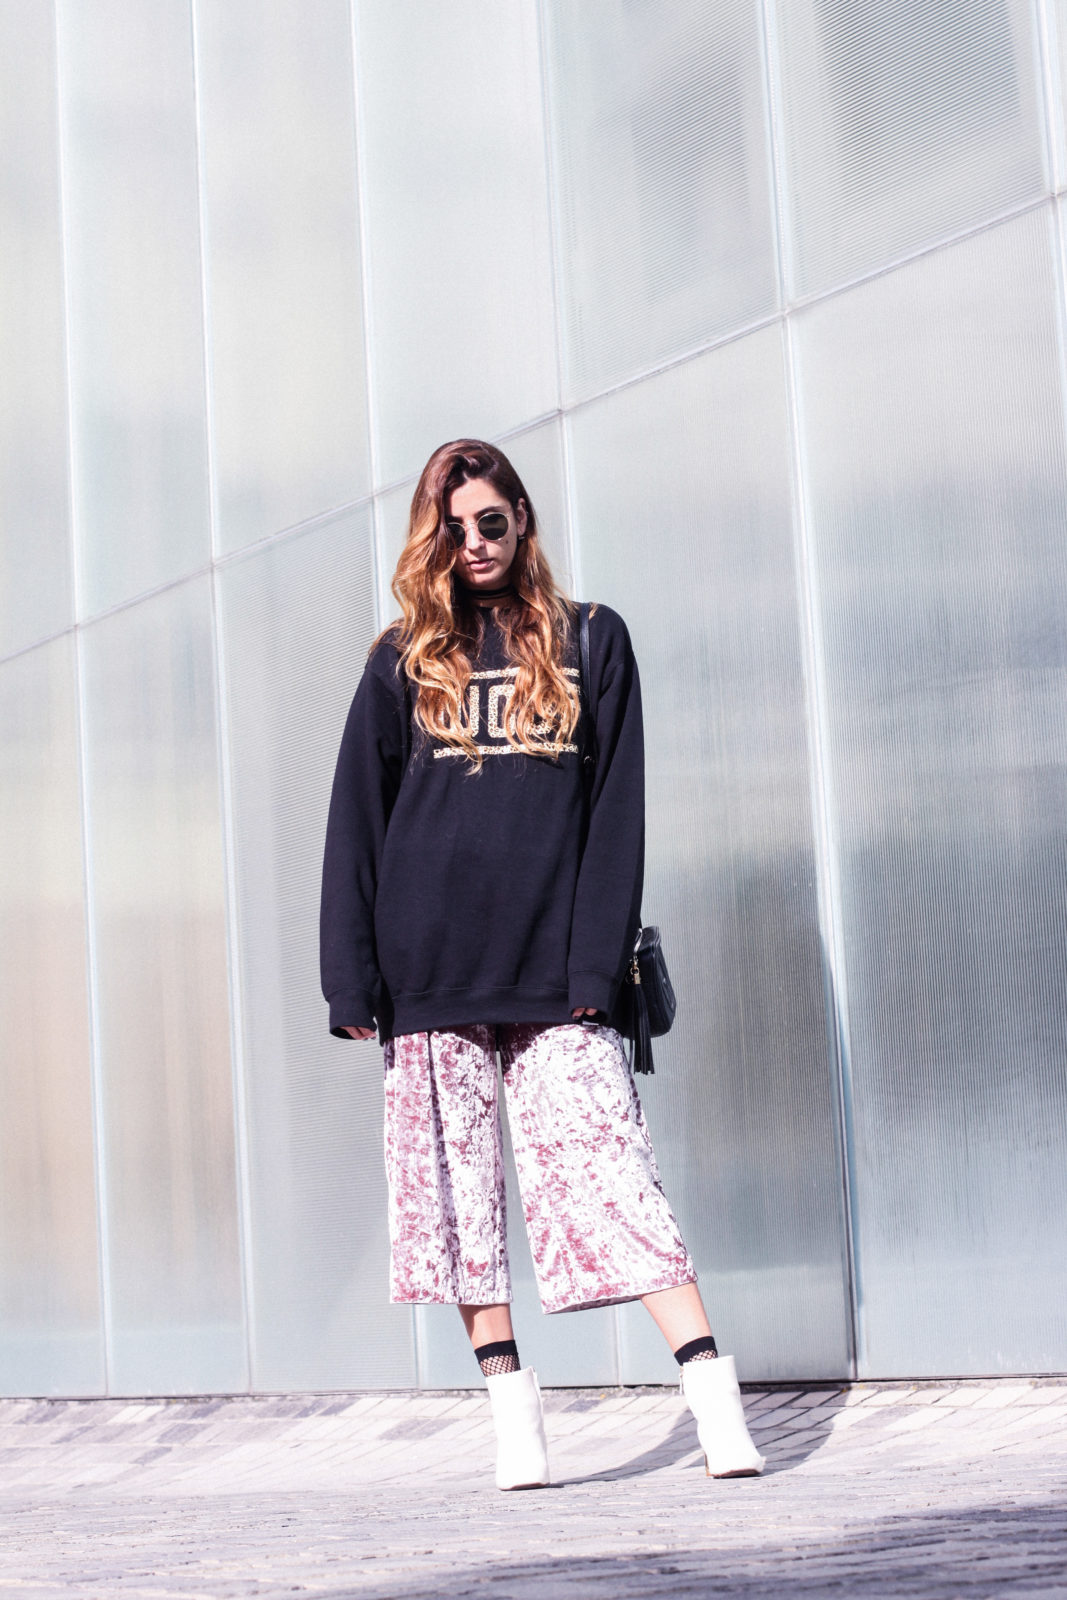 sudadera_woof_old_dogs_pantalones_terciopelo_rosa_botines_blancos_sweatshirt_oversize_choker_calcetines_rejilla_tendencias_2016_fall_trends_street_style_donkeycool-21